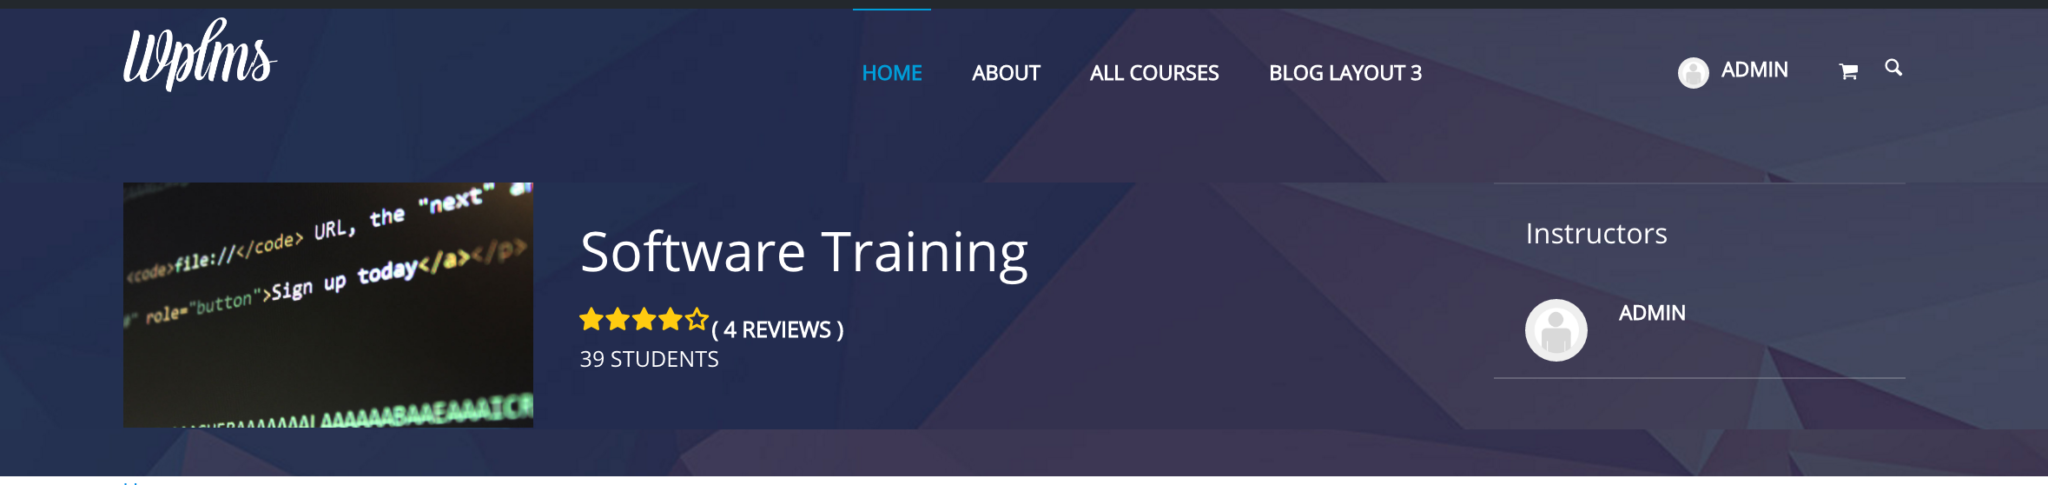 Header Showing Course